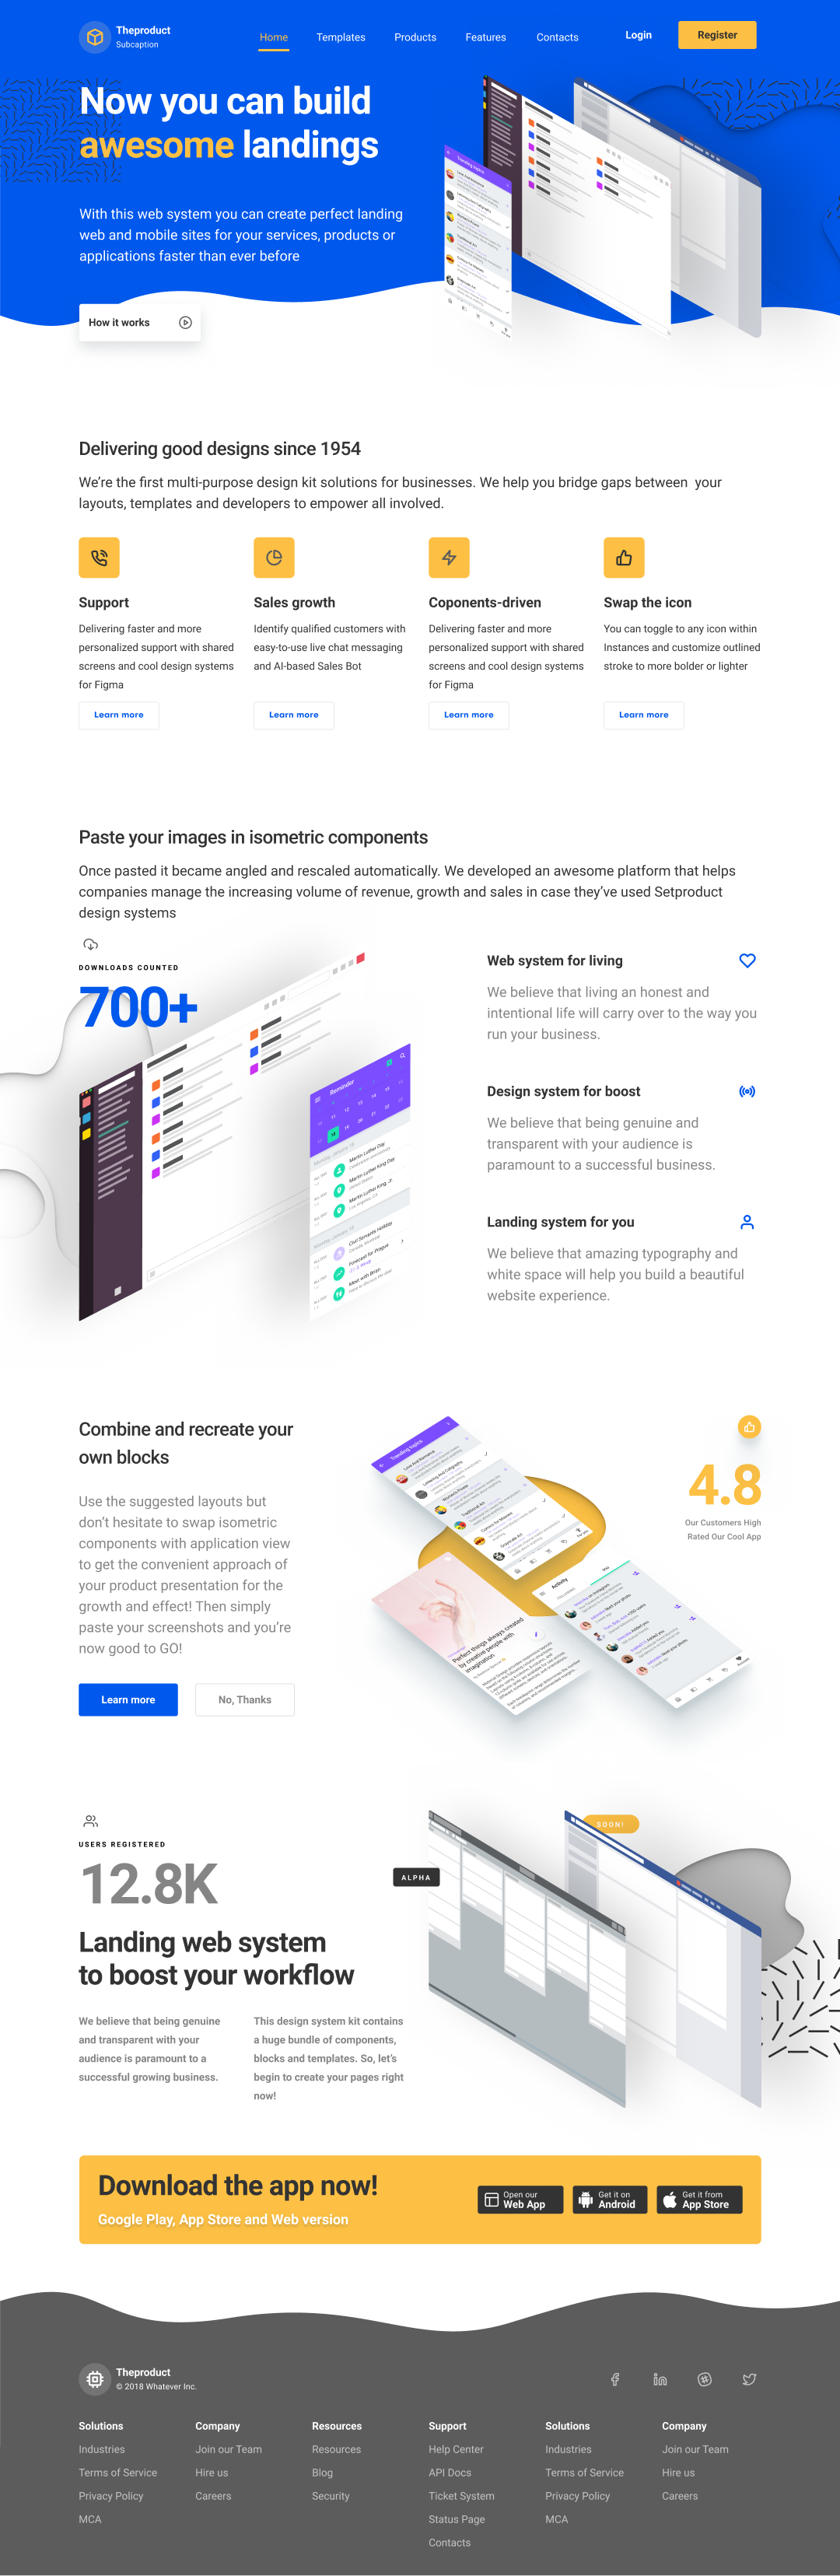 Figma landing pages for desktop